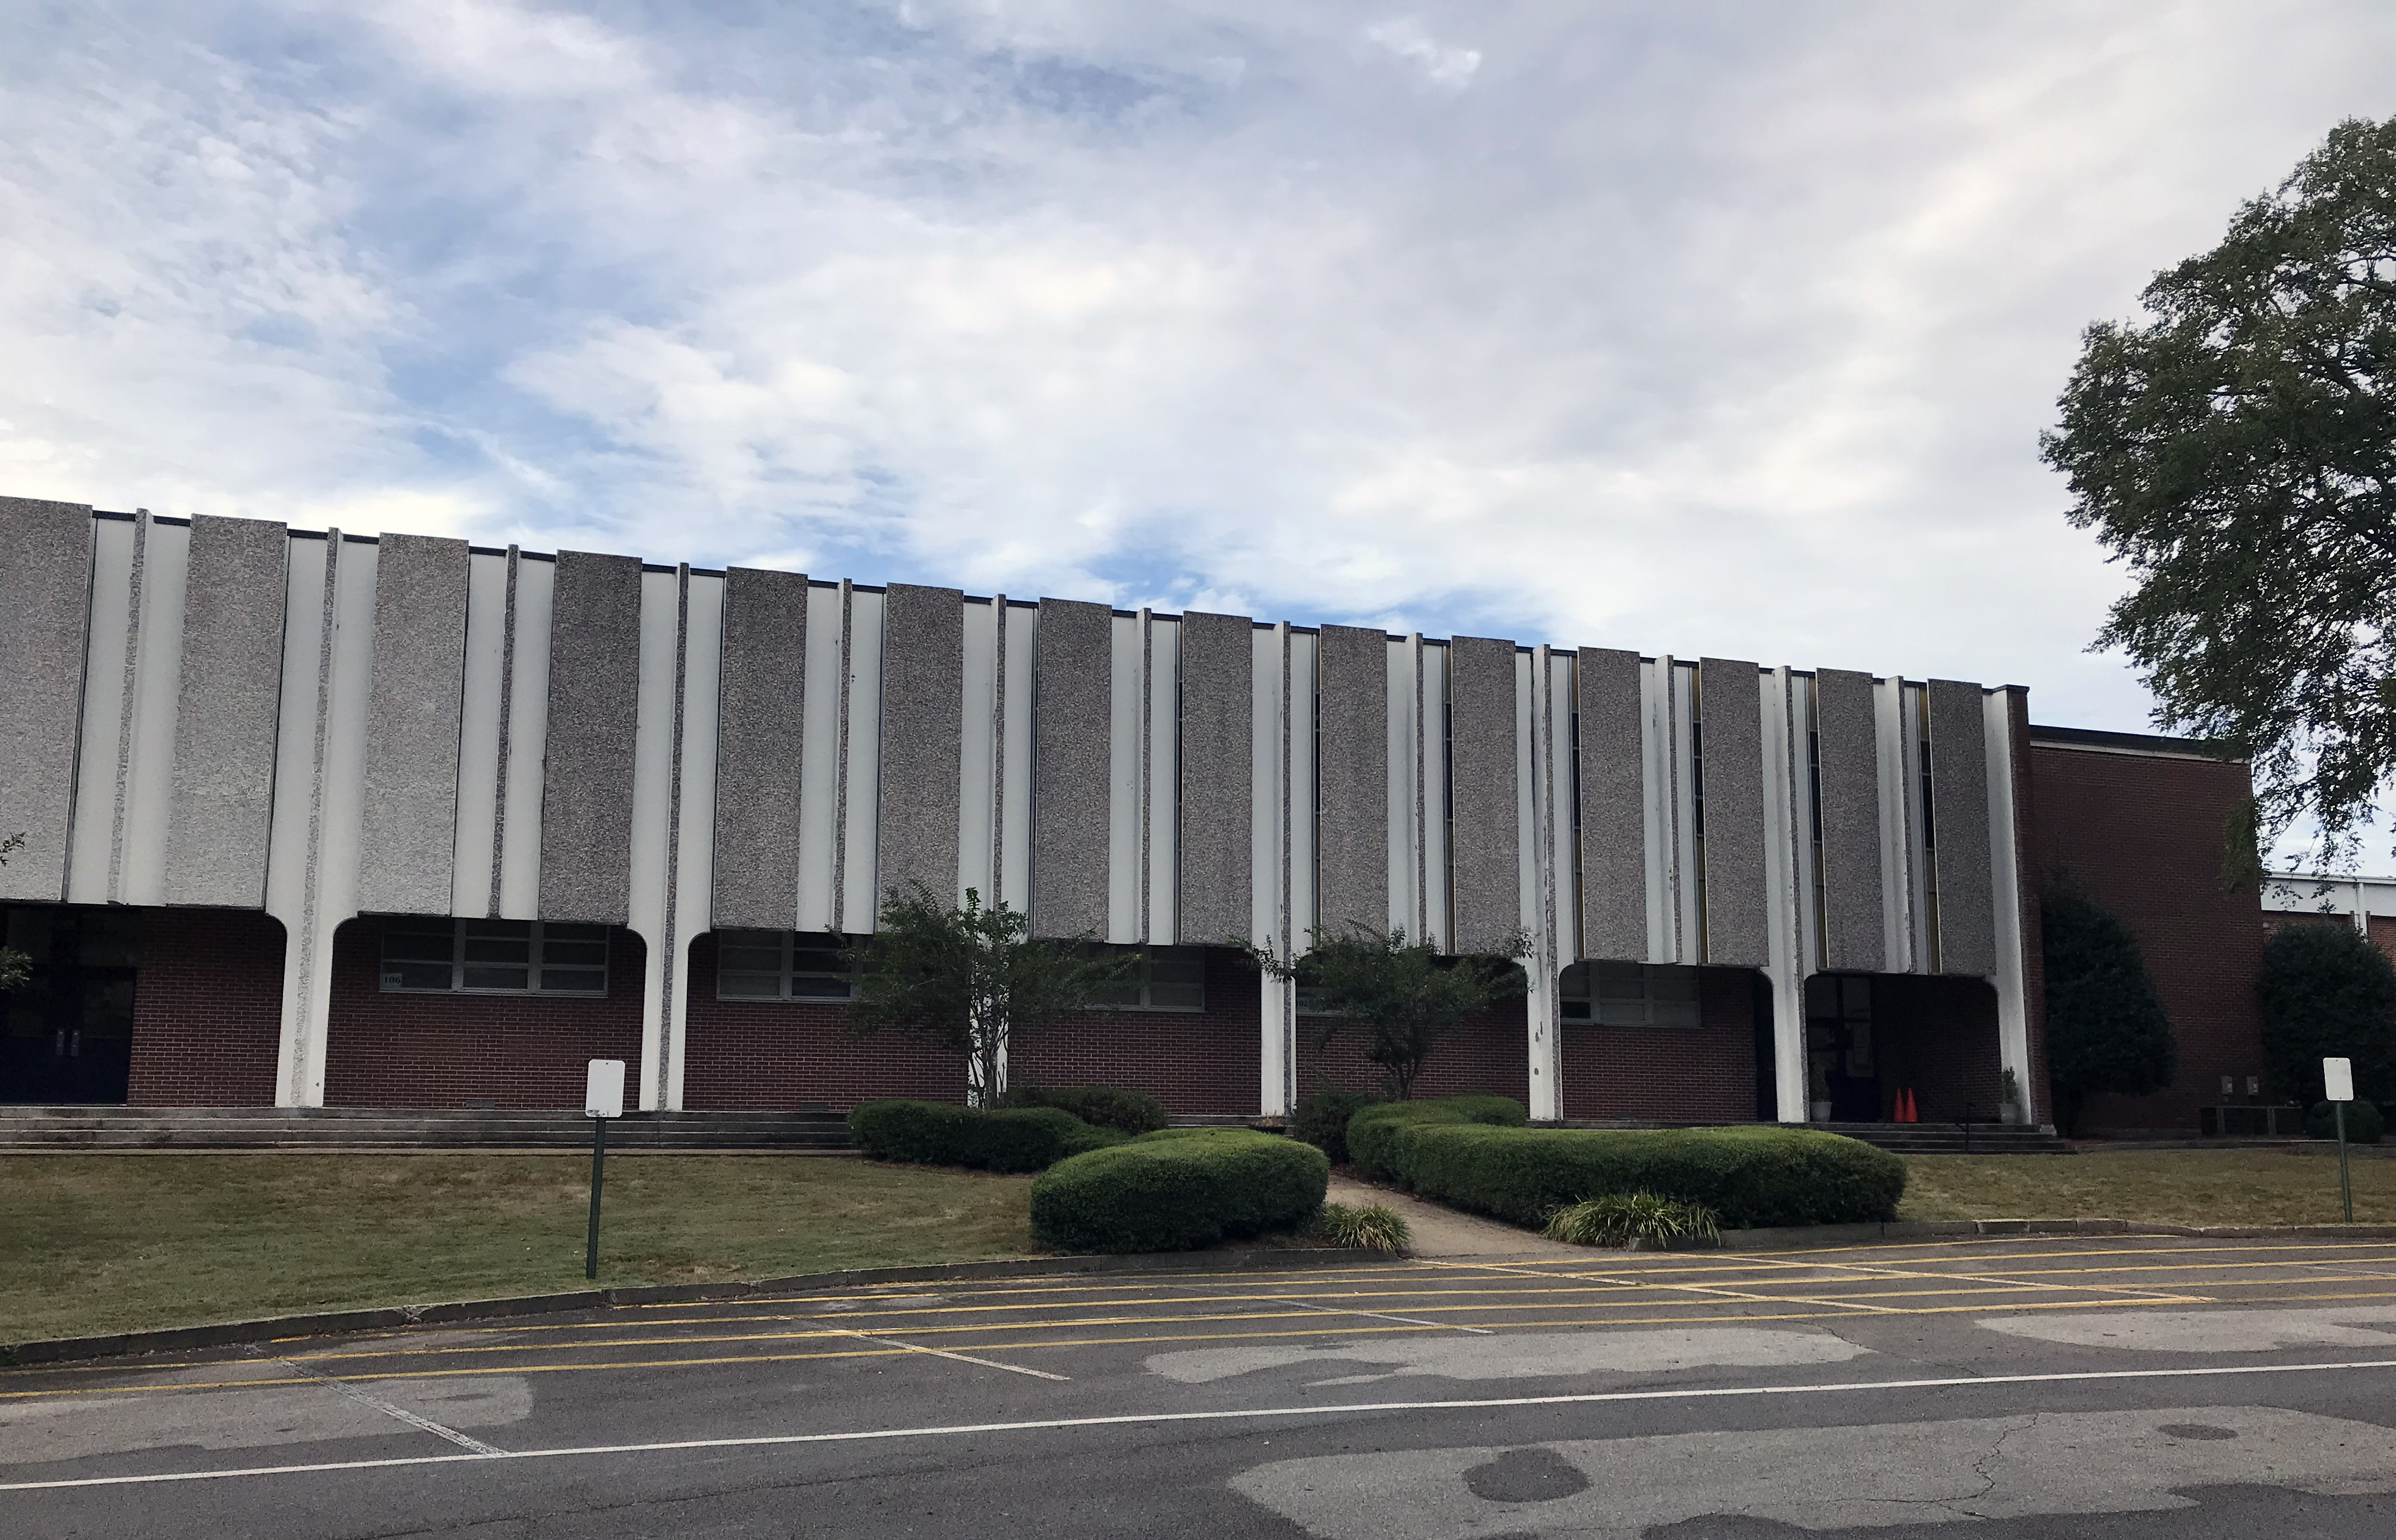 Springville Council holds zoning hearings, makes library purchases